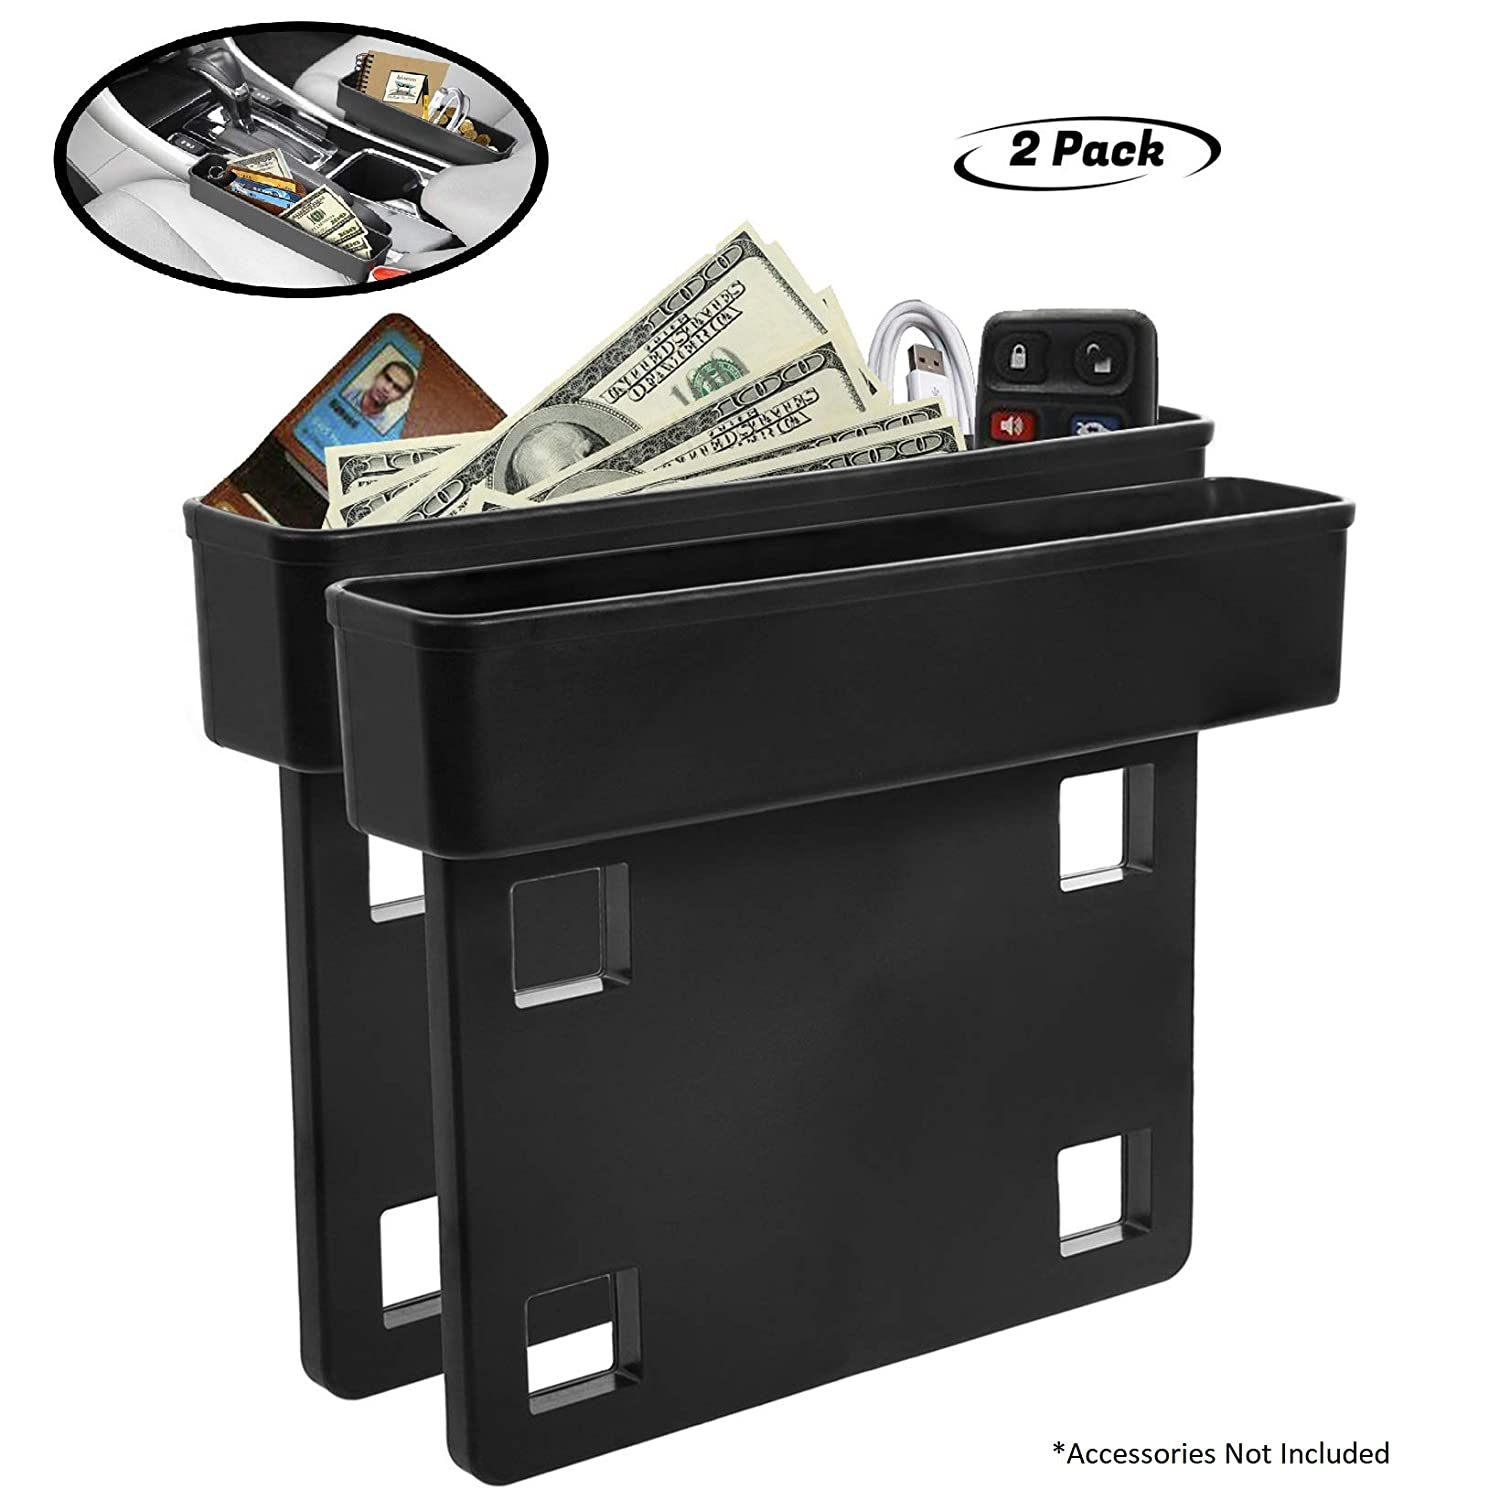 Coins and Keys Multifunction Crevice Pocket Caddy Catcher 2 Pack Side Of Center Console Storage Box For Money CellPhone Lebogner Between Car Seat Gap Filler Organizer Vehicle Interior Accessories